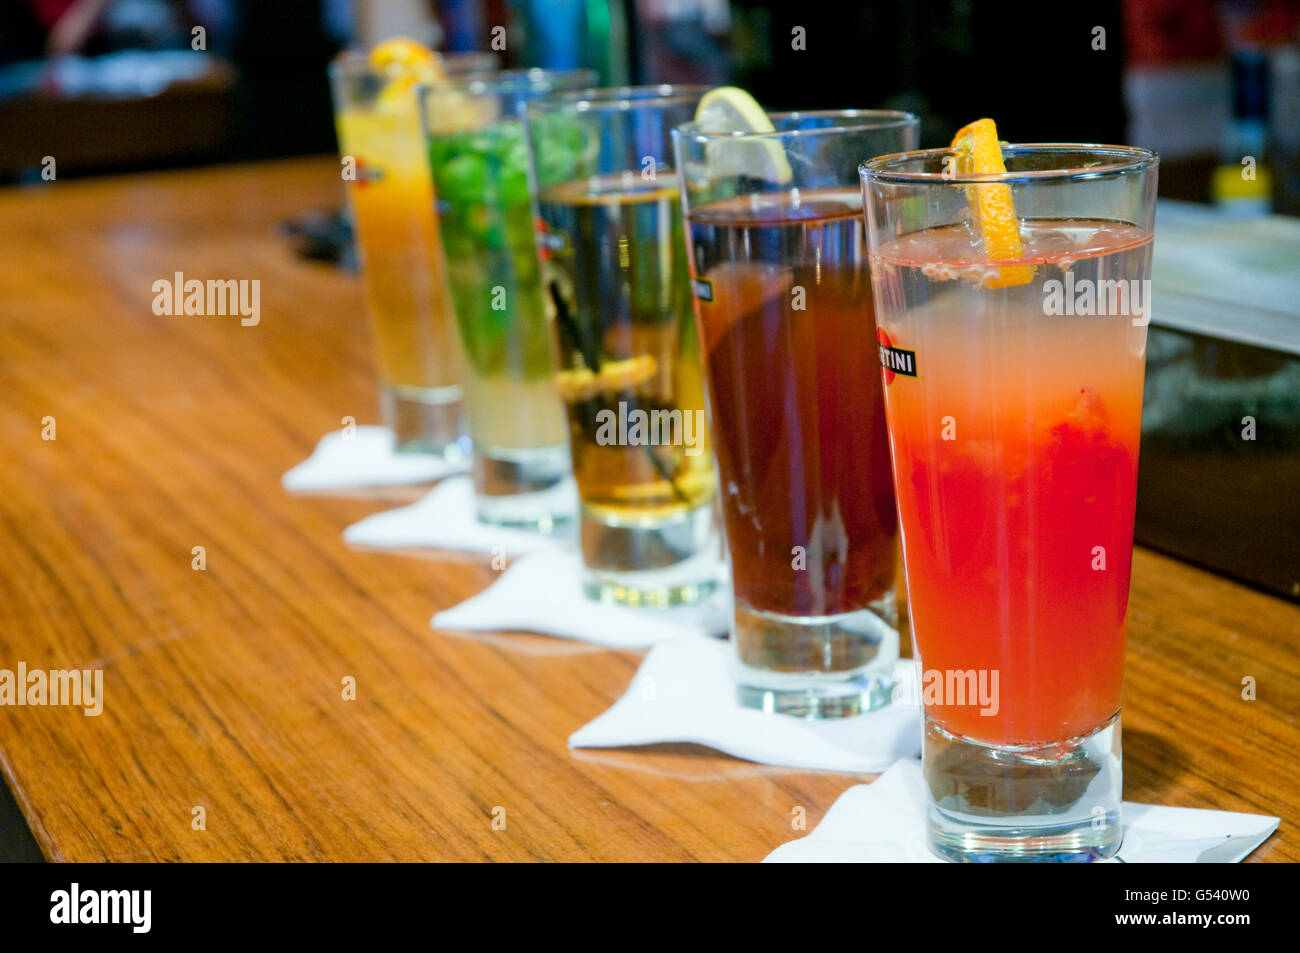 Cocktails. San Miguel market, Madrid, Spain. - Stock Image